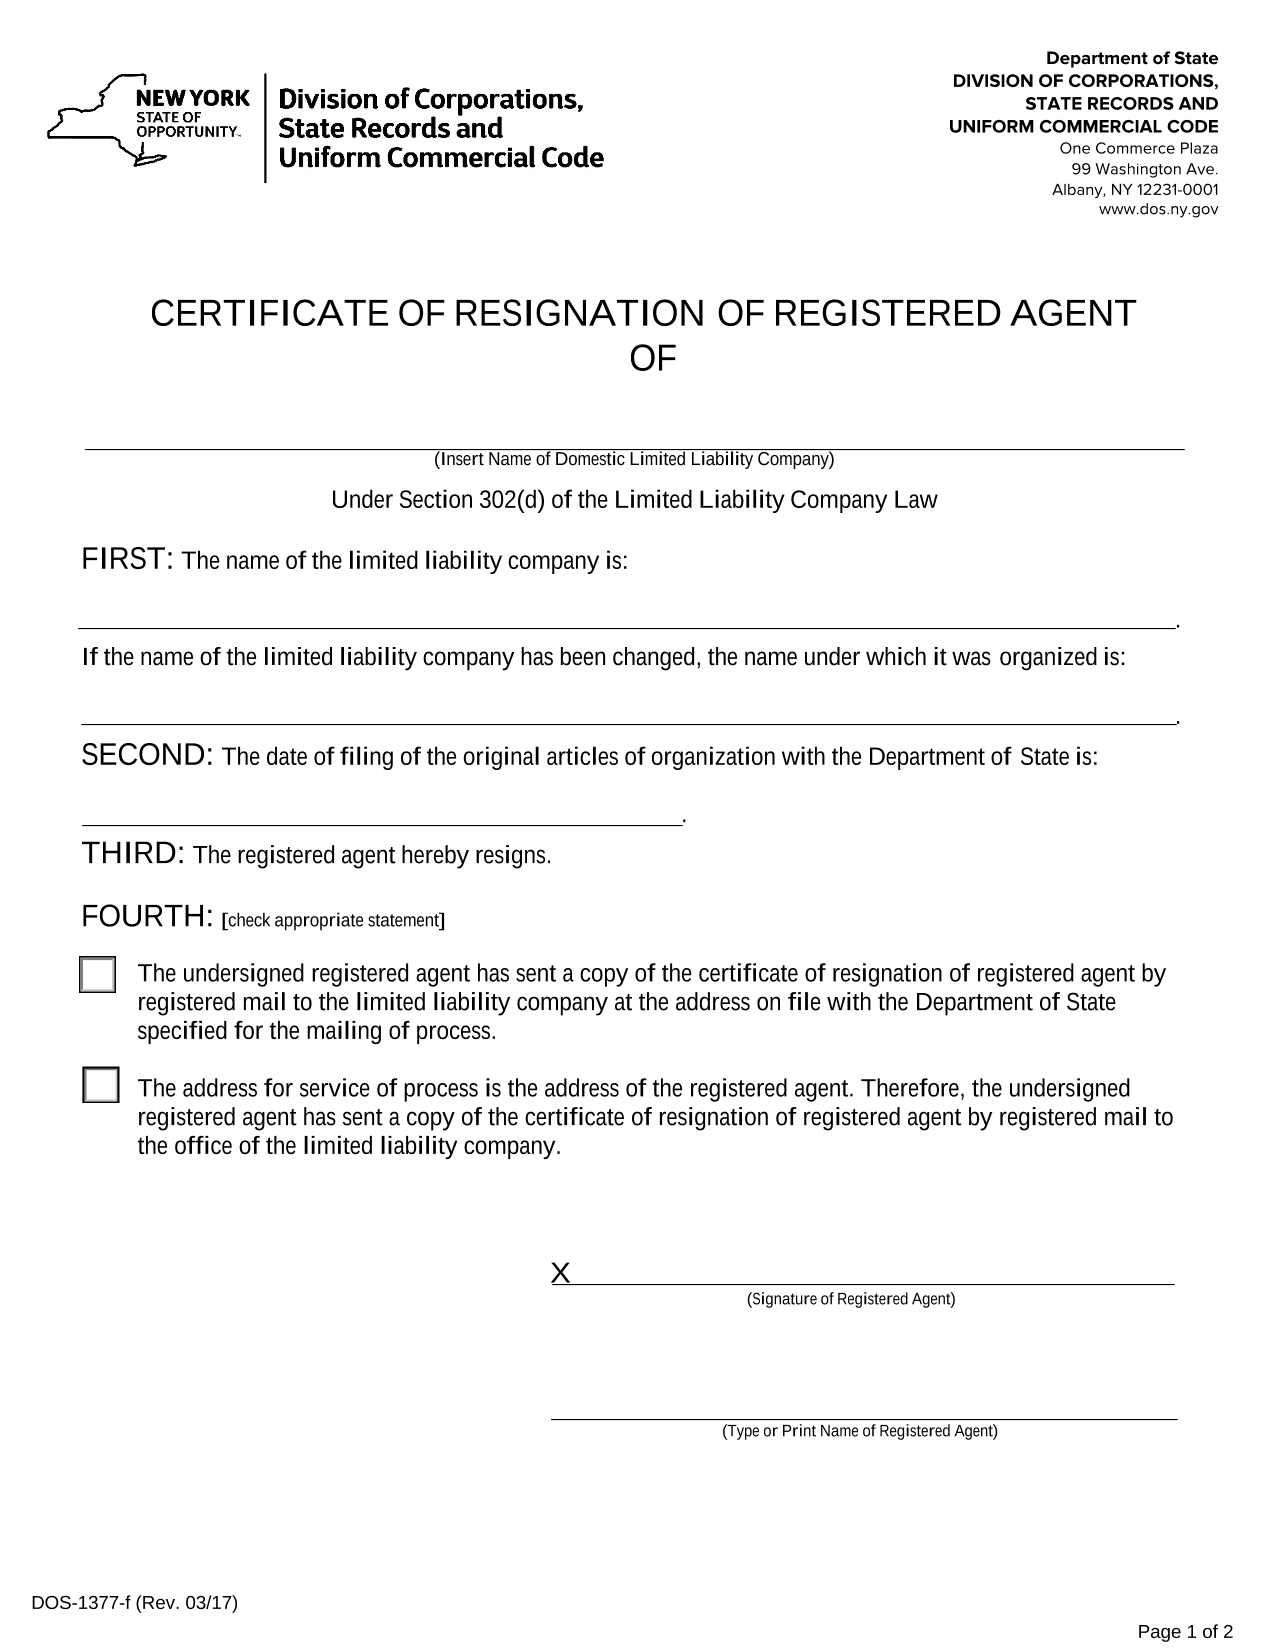 new-york-llc-certificate-of-resignation-of-registered-agent-